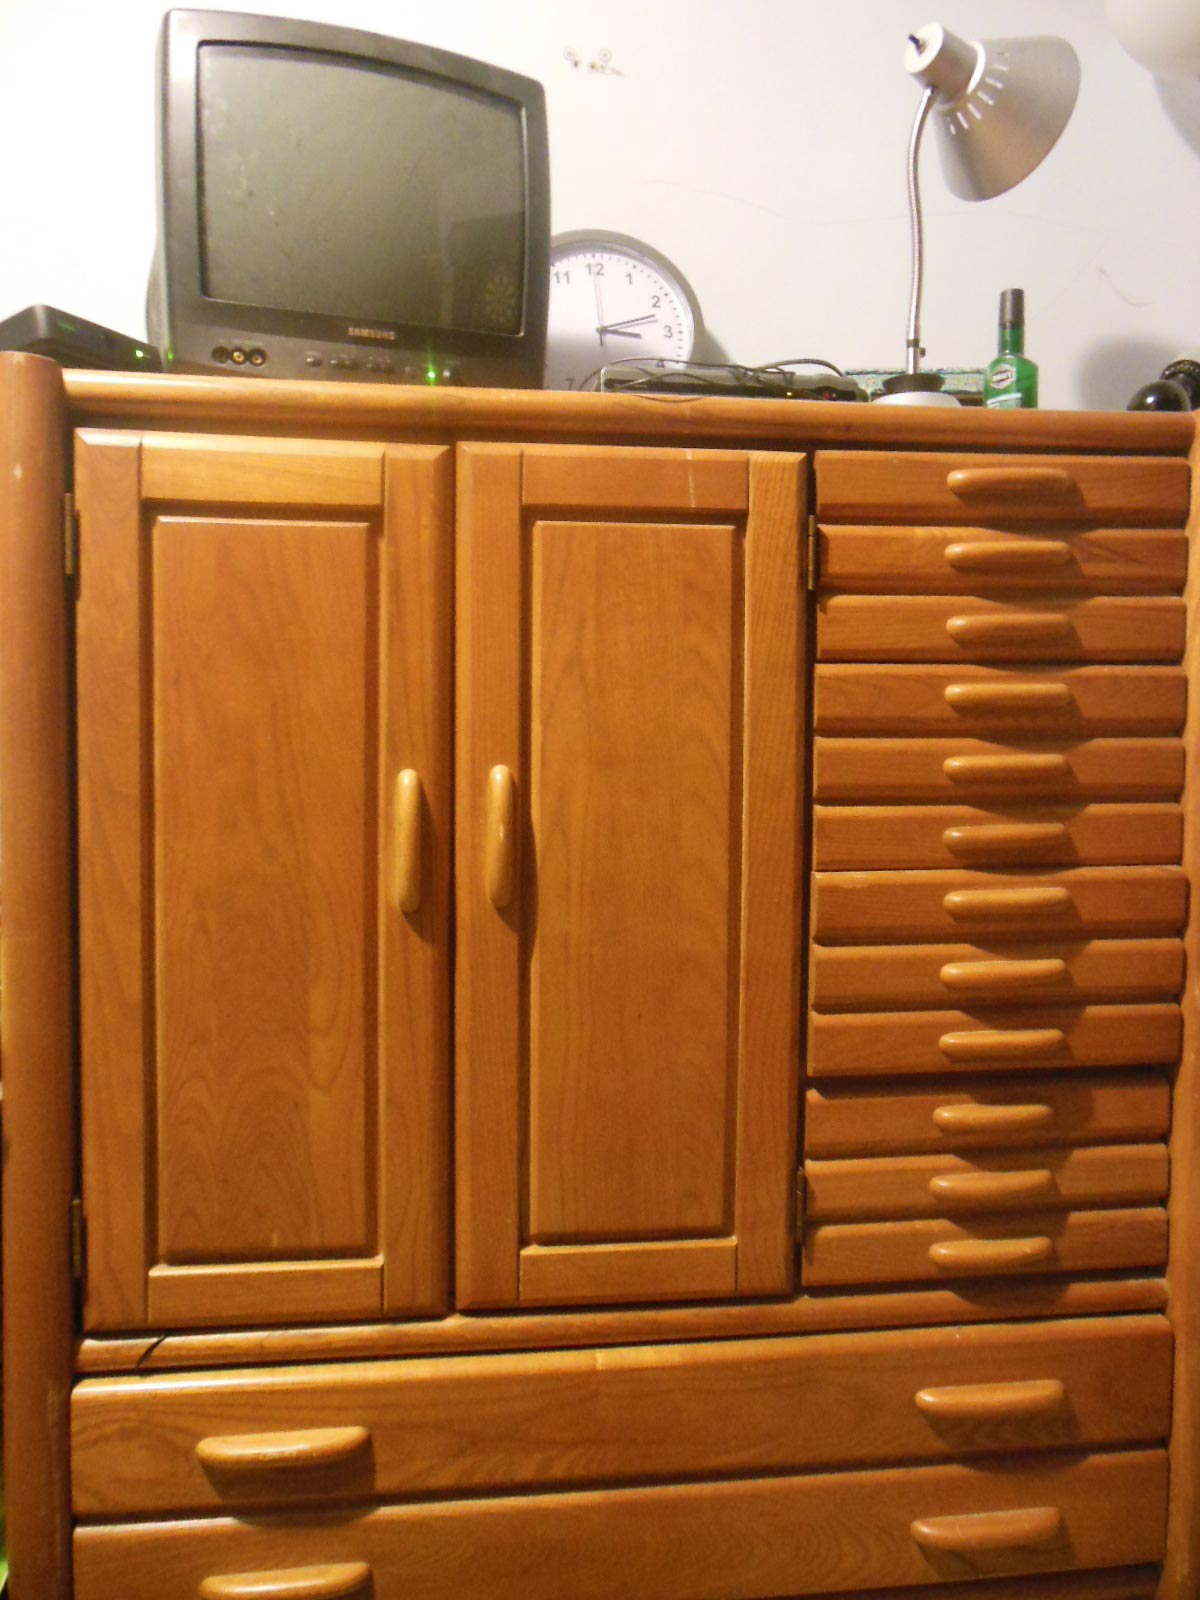 chest of drawers from my foreclosure property preservation business